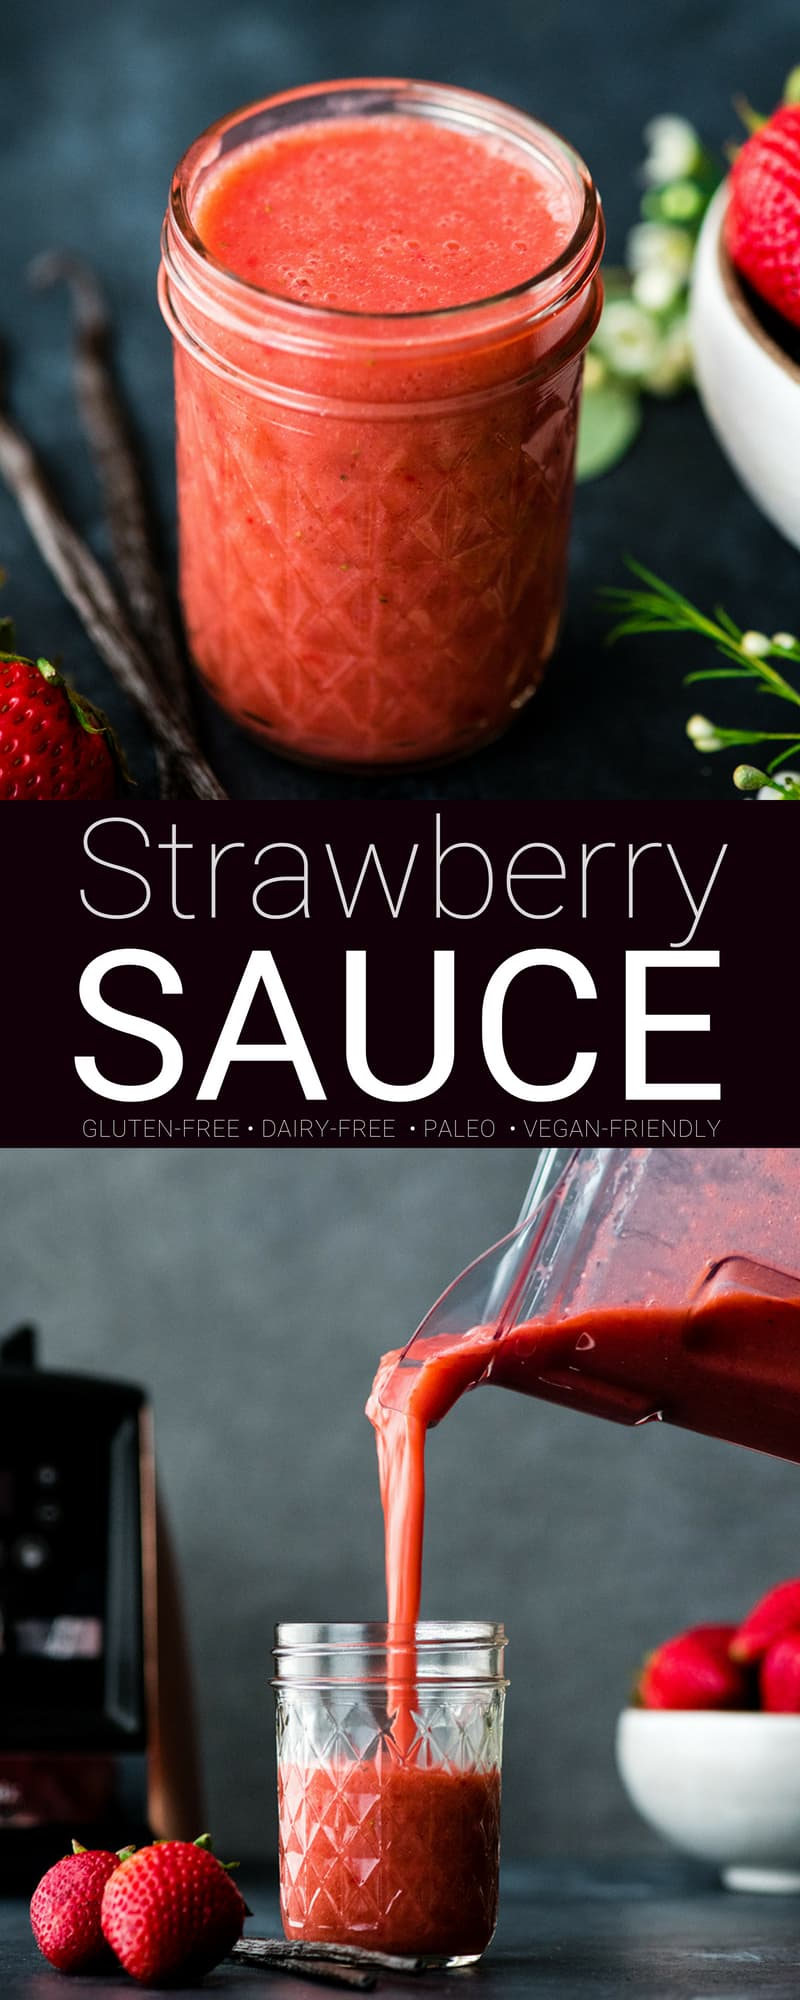 This fresh strawberry sauce is perfect for pancakes, waffles, angel food cake, and ice cream! This simple strawberry sauce recipe is made with only 5 ingredients and is ready in 5 minutes! Plus it's healthy - paleo, refined sugar free and gluten-free! #strawberrysauce #strawberries #pancakes #vitmaix #glutenfree #dairyfree #paleo #vegan #refinedsugarfree #pancakes #desert #breakfast #healthyrecipe